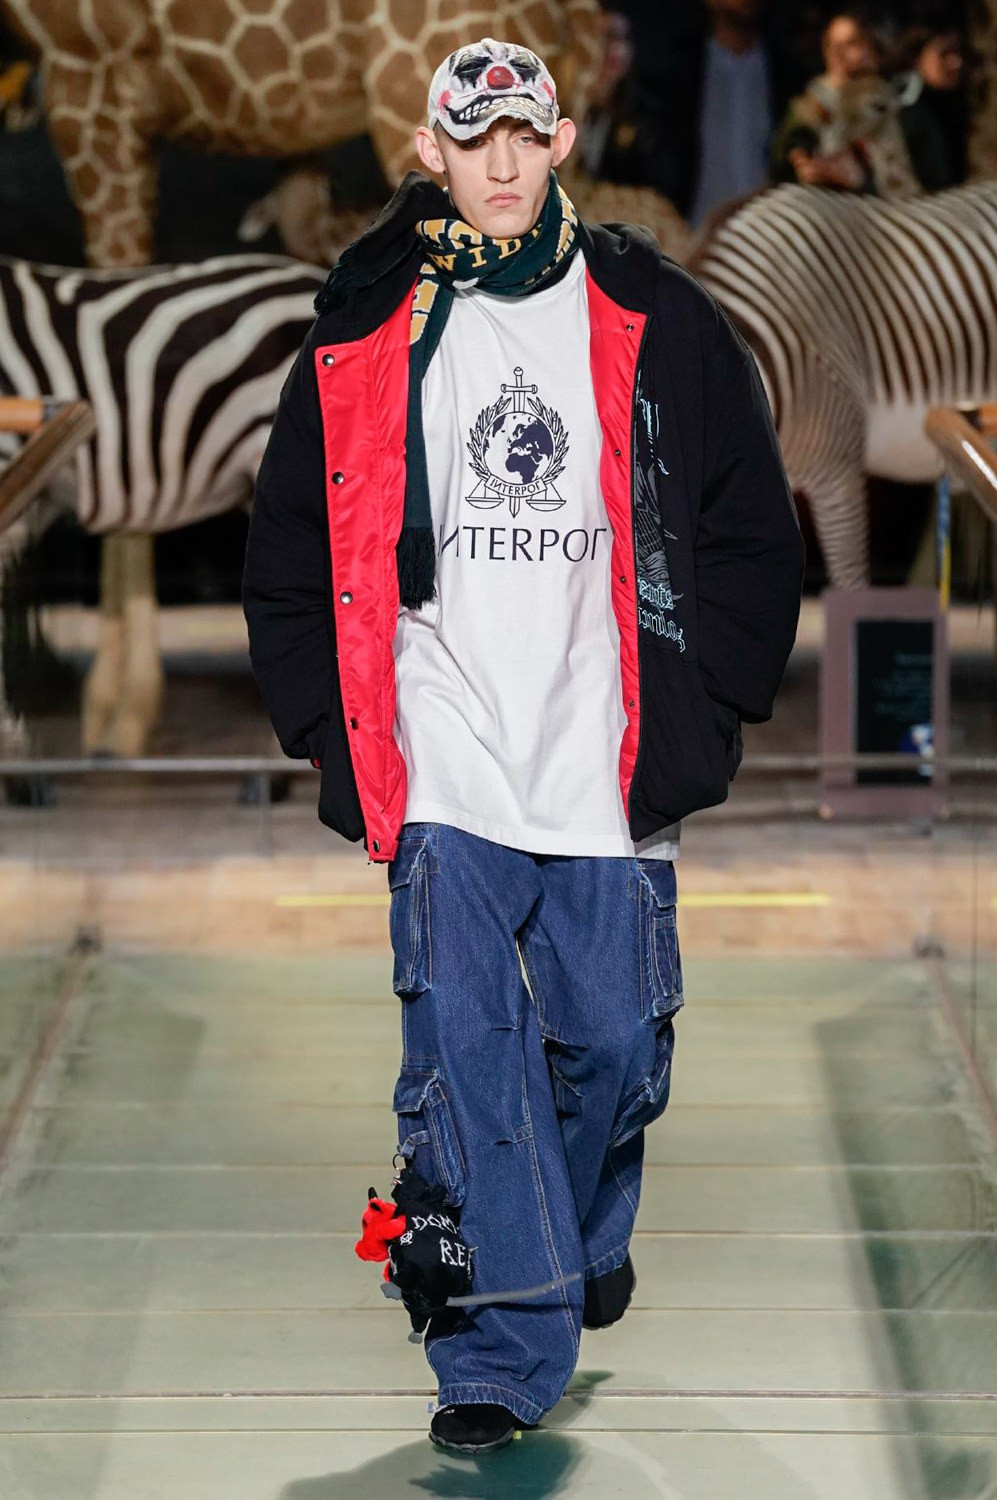 https---vetements-aw19-dtf-magazine.com-image-2019-01-vetements-fall-winter-2019-paris-fashion-week-26